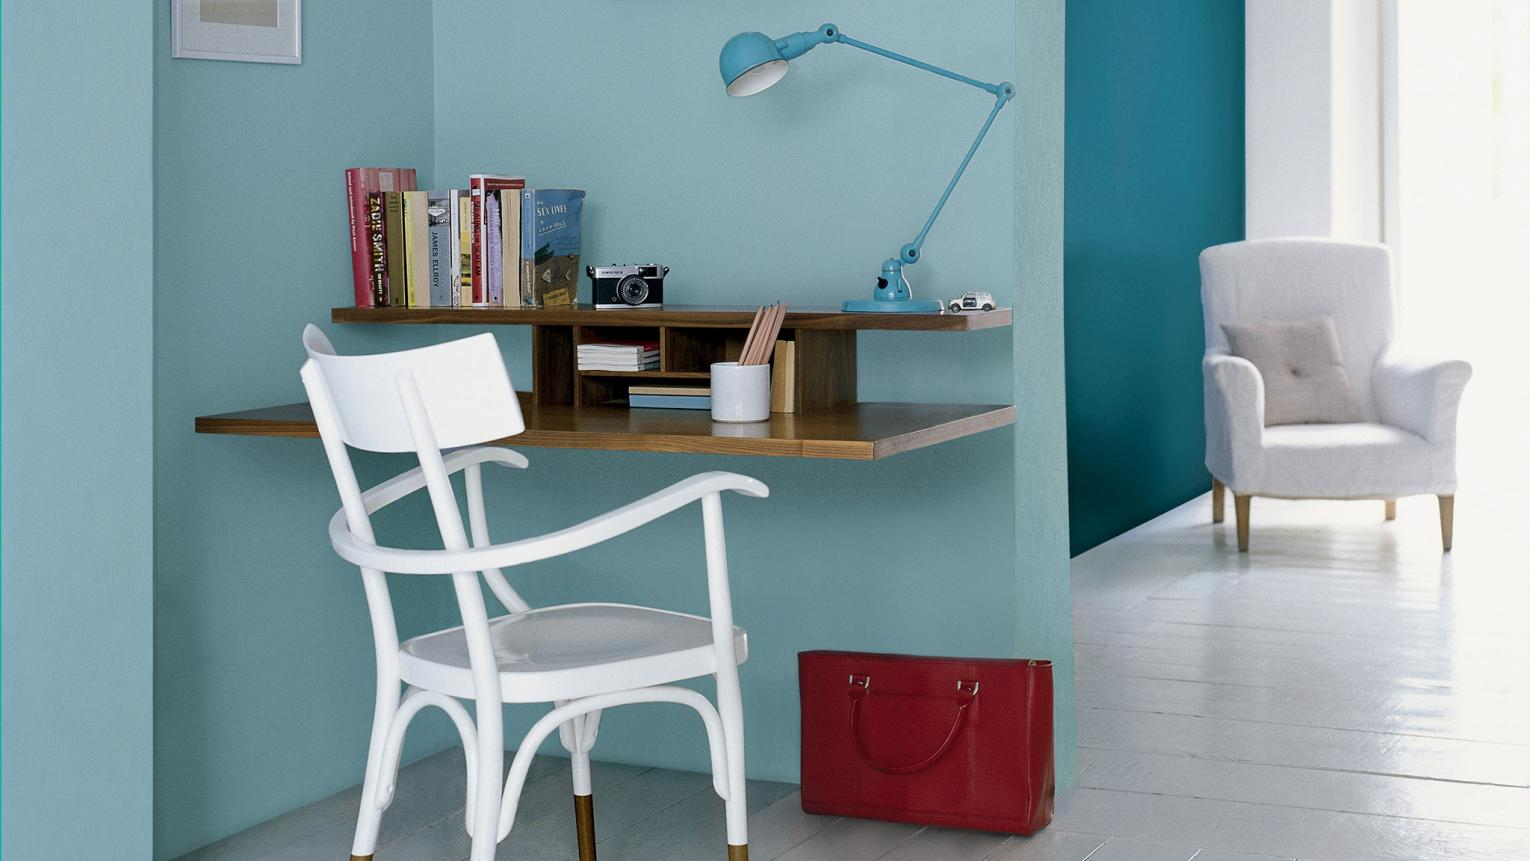 Contrast hazy blue with bold teal for inspiring office impact.